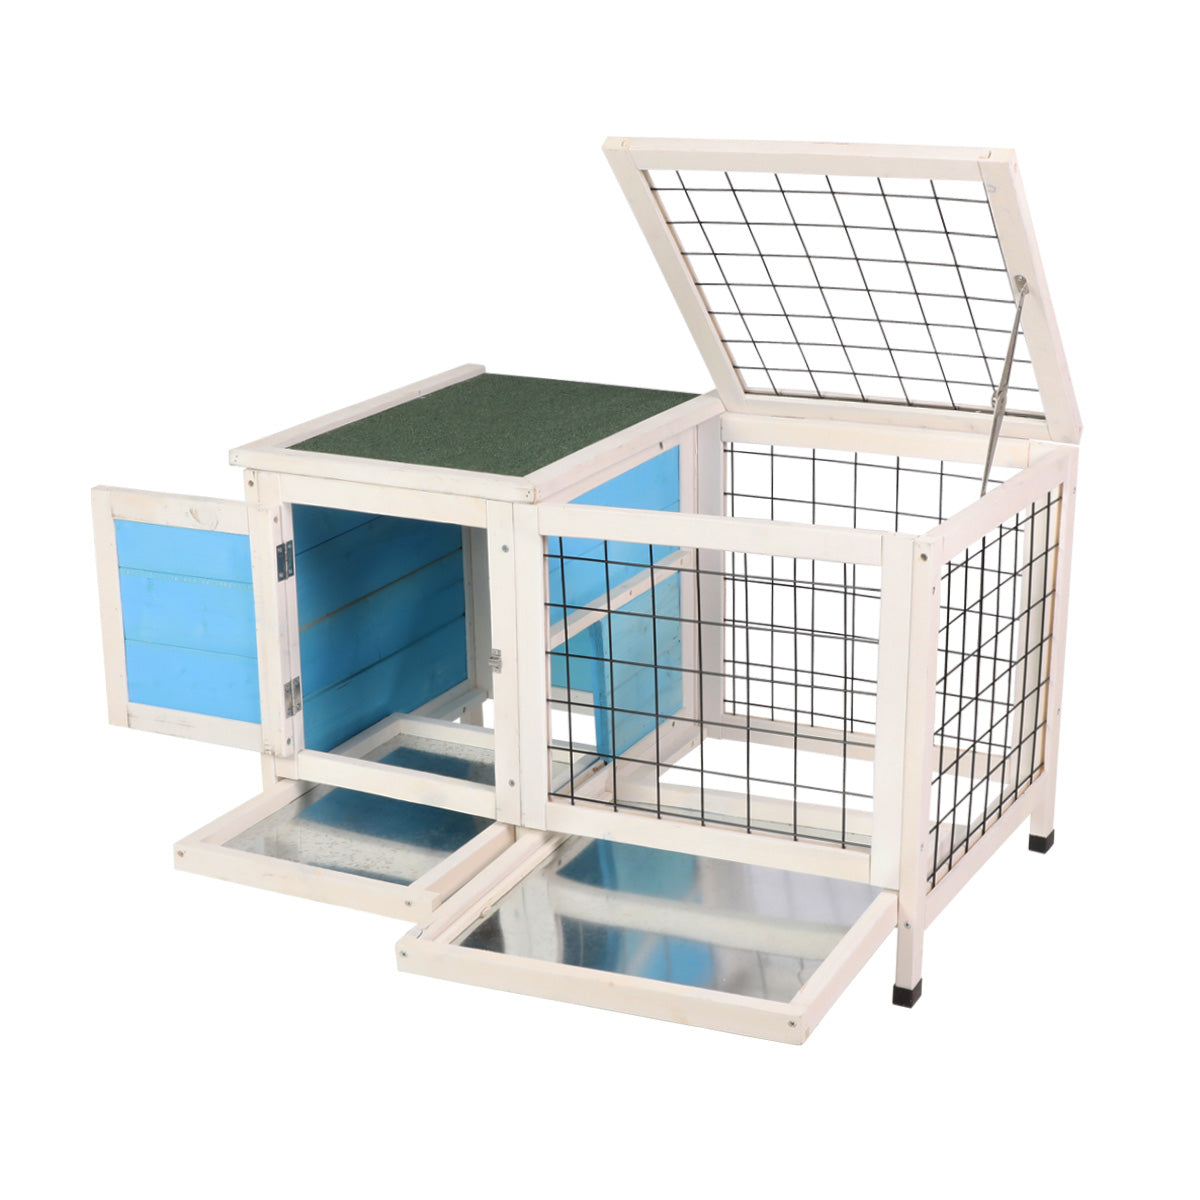 Beige Wooden Small Animal Chicken Coop Rabbit Hutch Bunny House Gage with 2 Removable